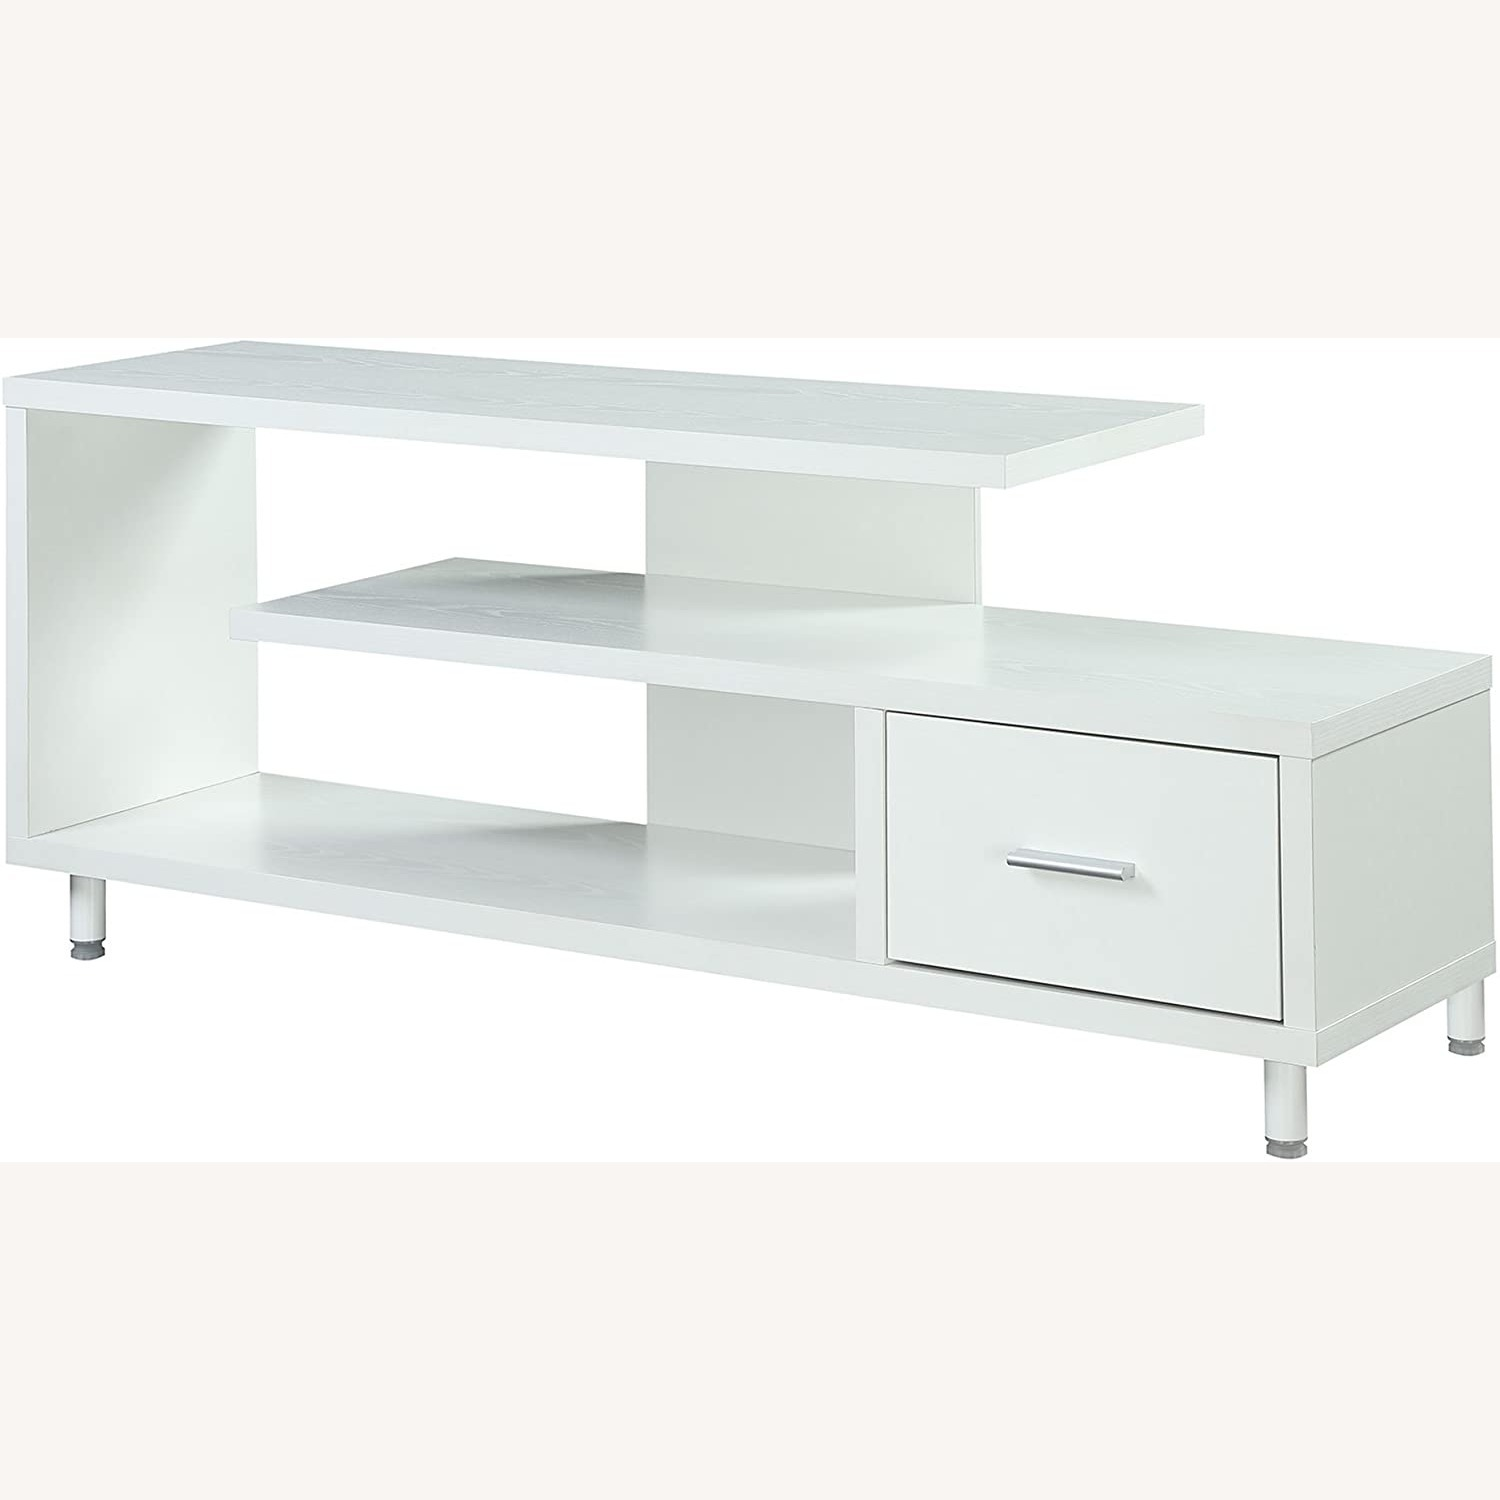 "Convenience Concepts Modern 60"" TV Stand White - image-3"